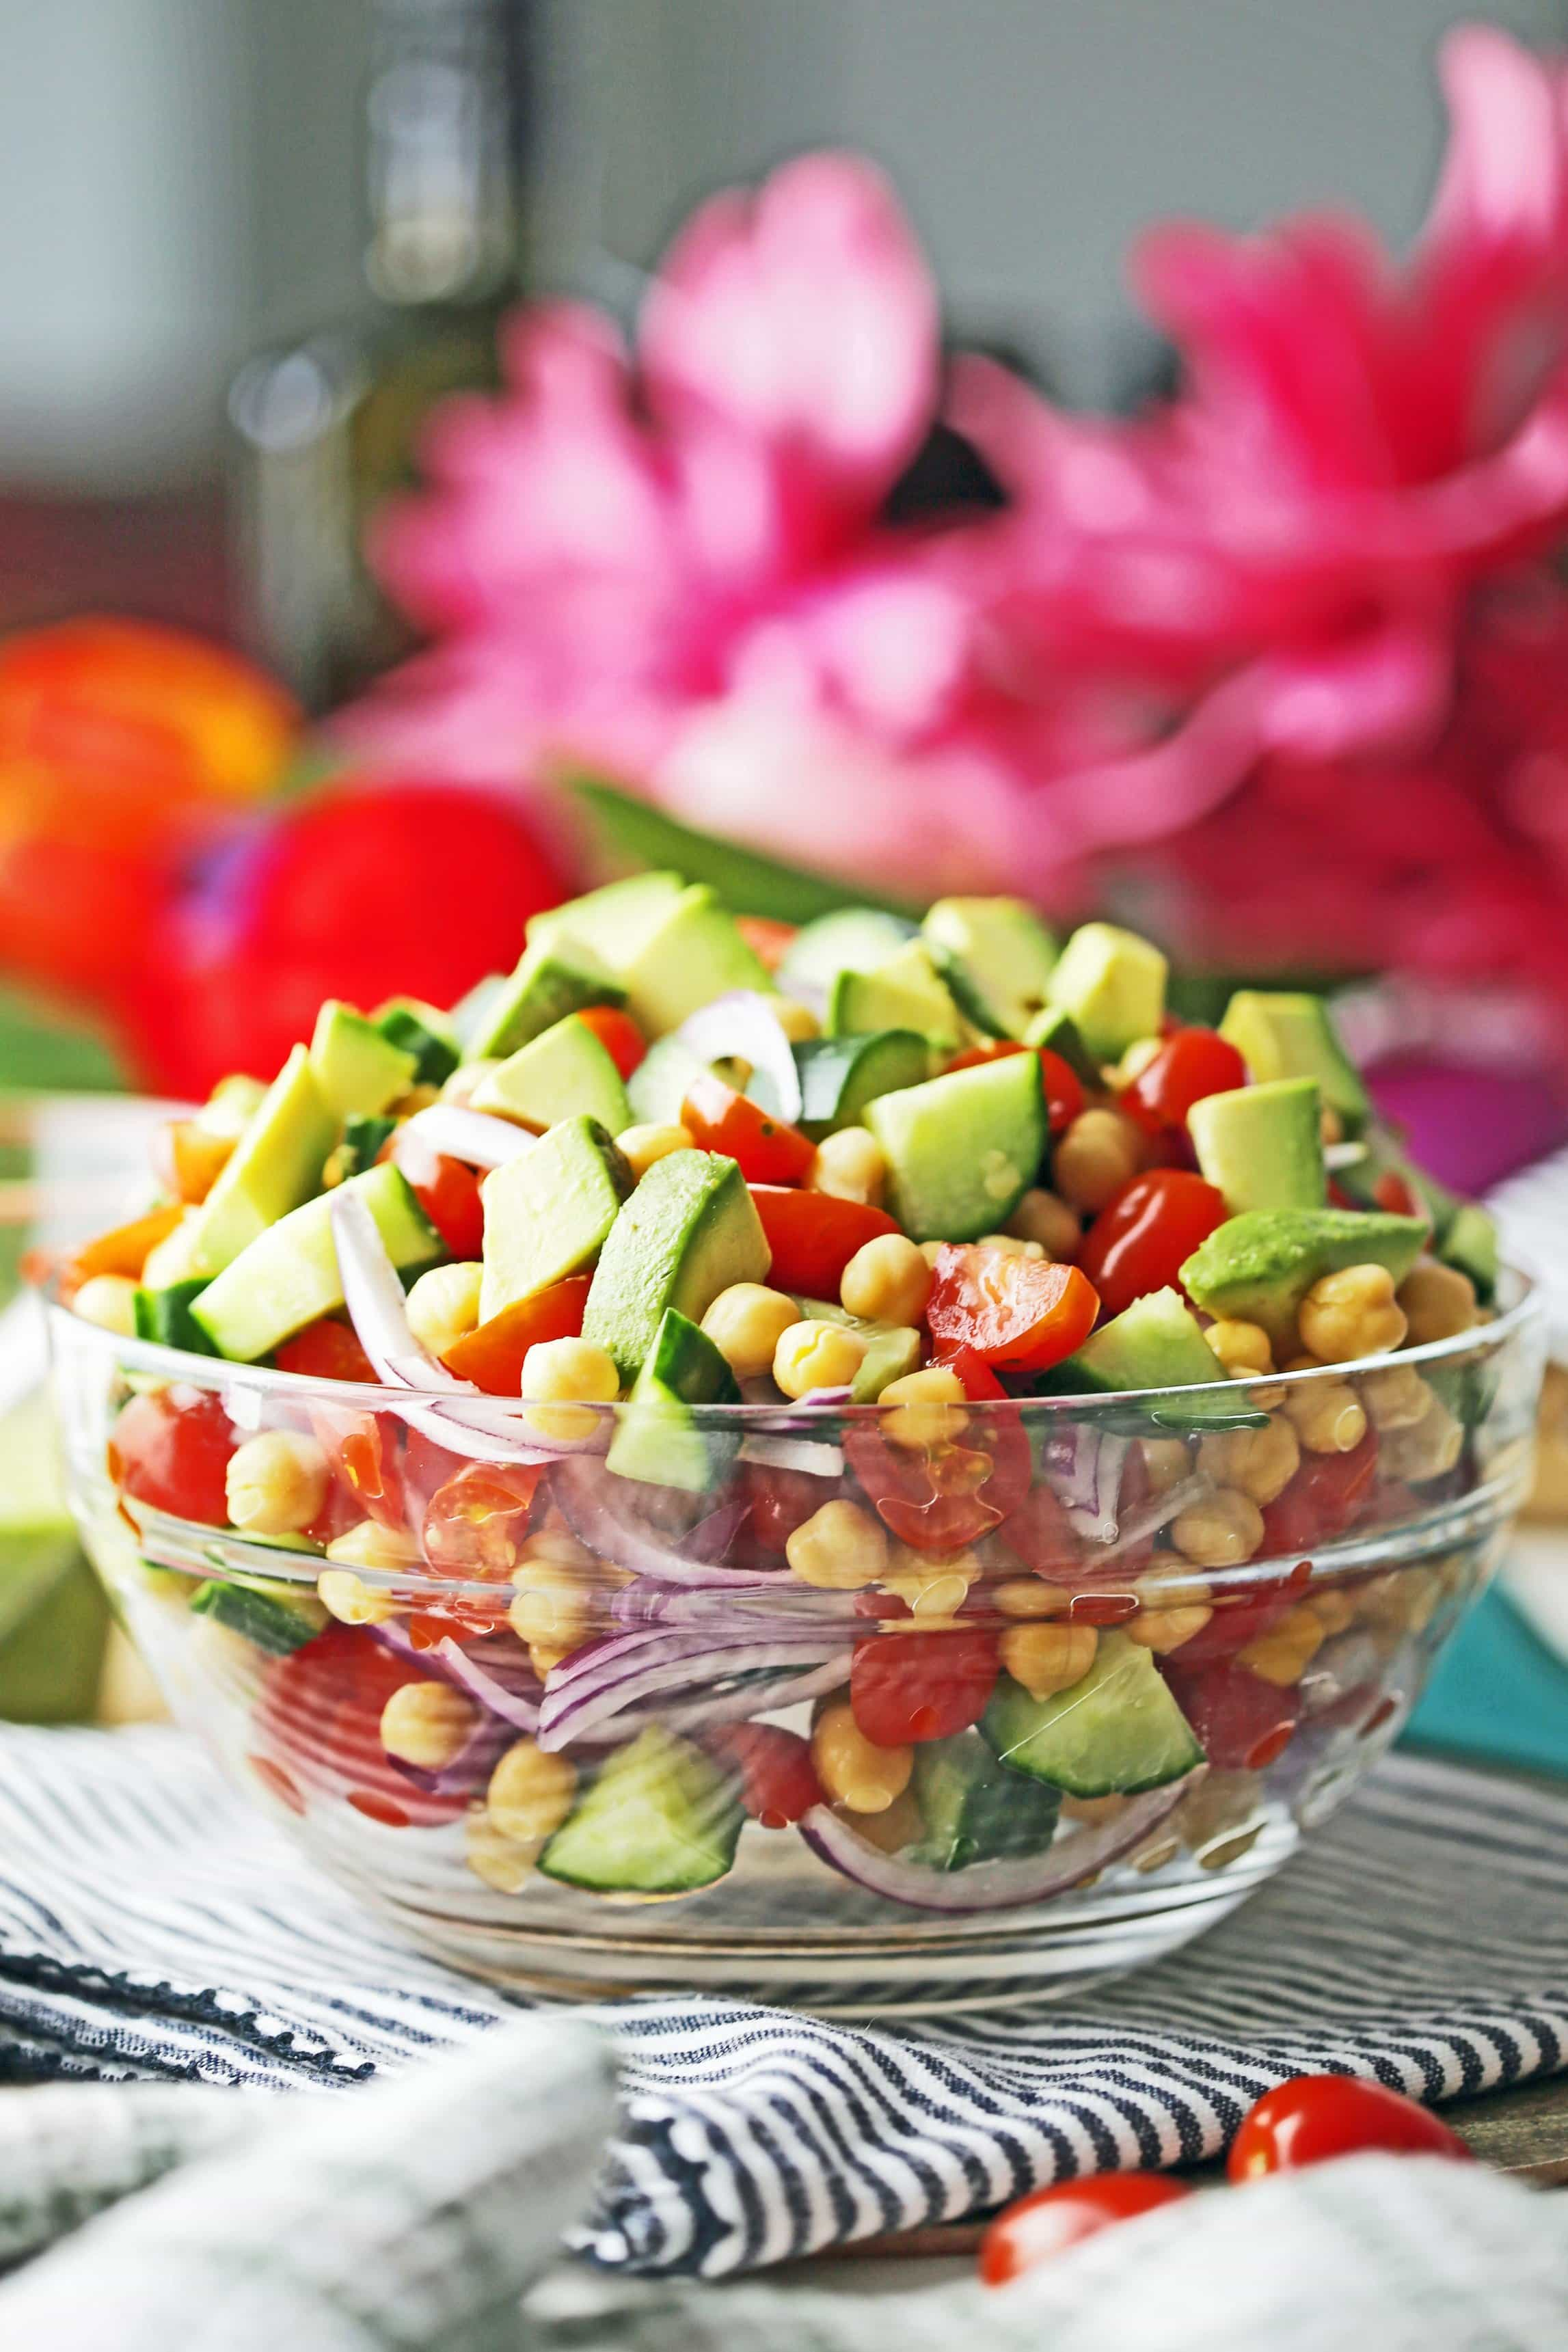 A side view of Chickpea Cucumber Avocado Salad in a large glass bowl.